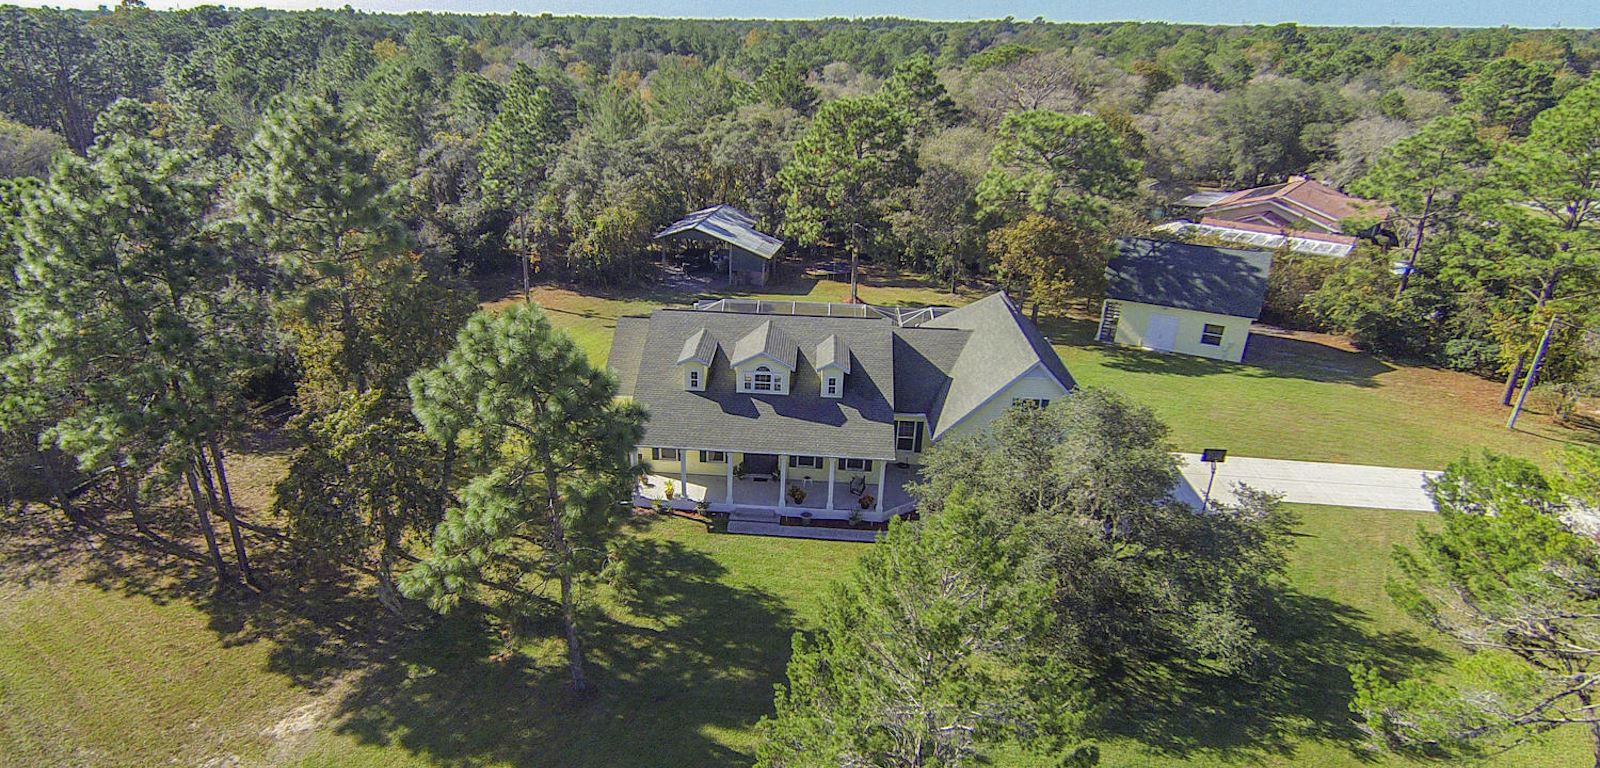 Ranches - aerial photo of a house